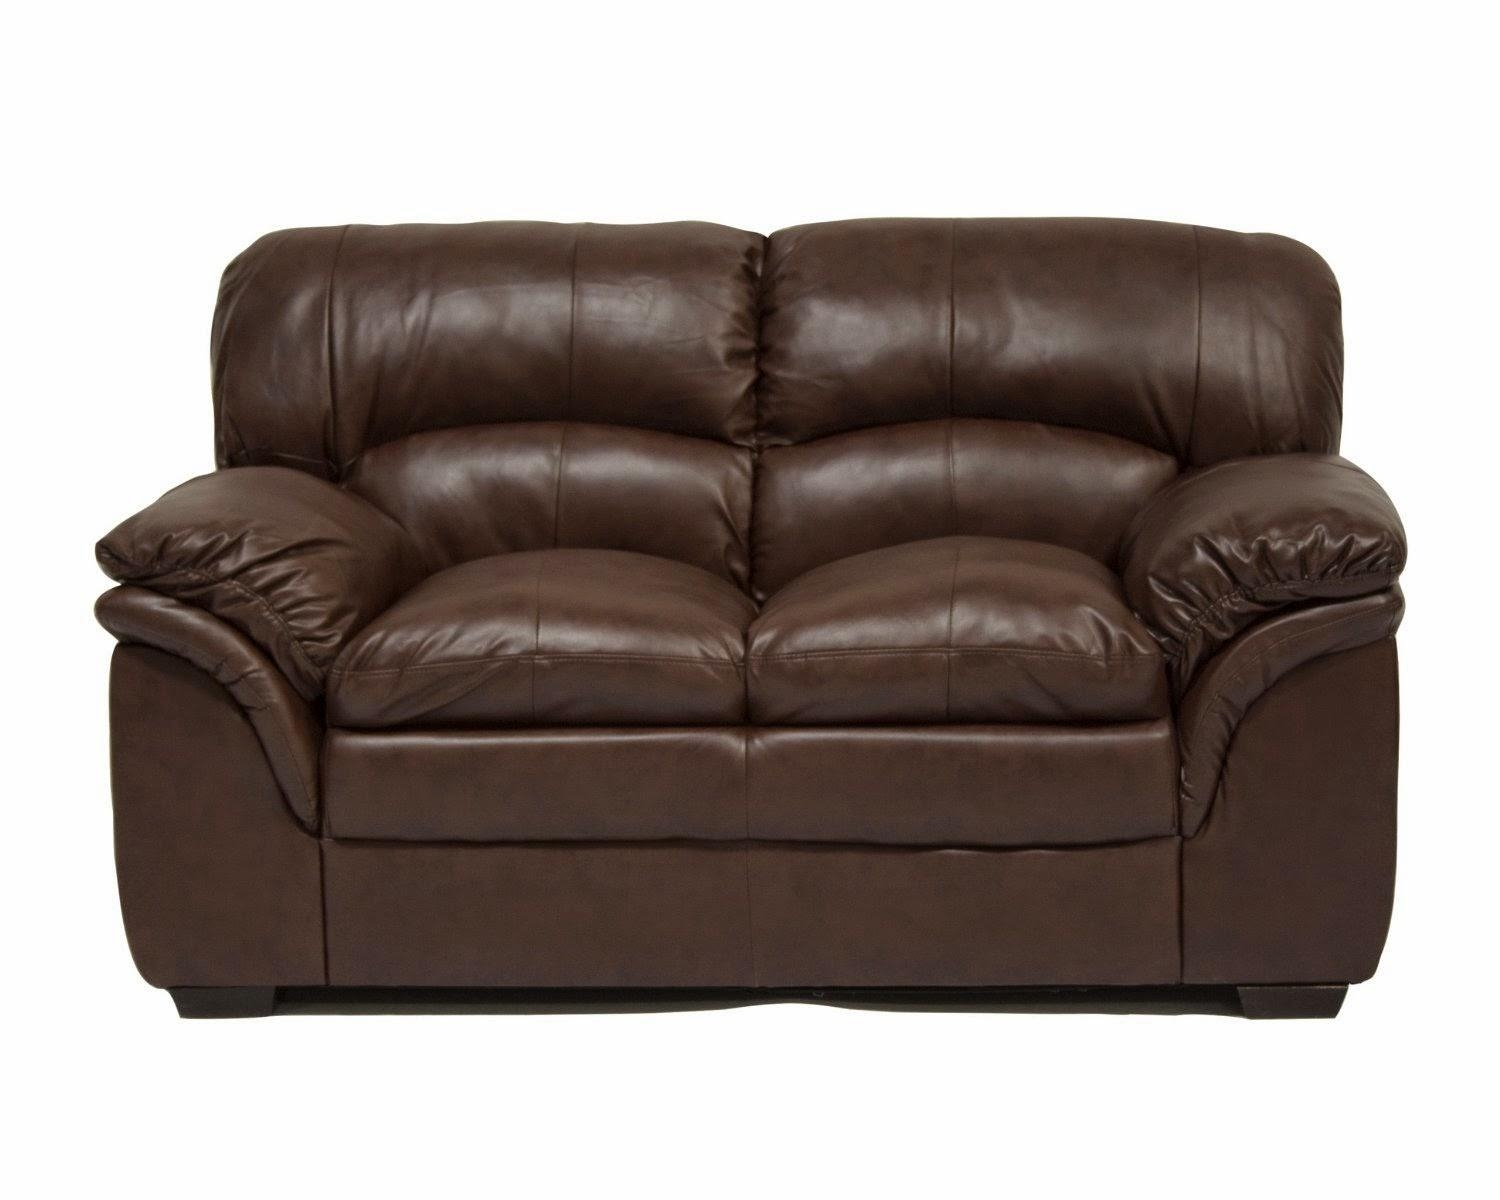 modena 2 seater reclining leather sofa better life sofas 20 ideas of recliner